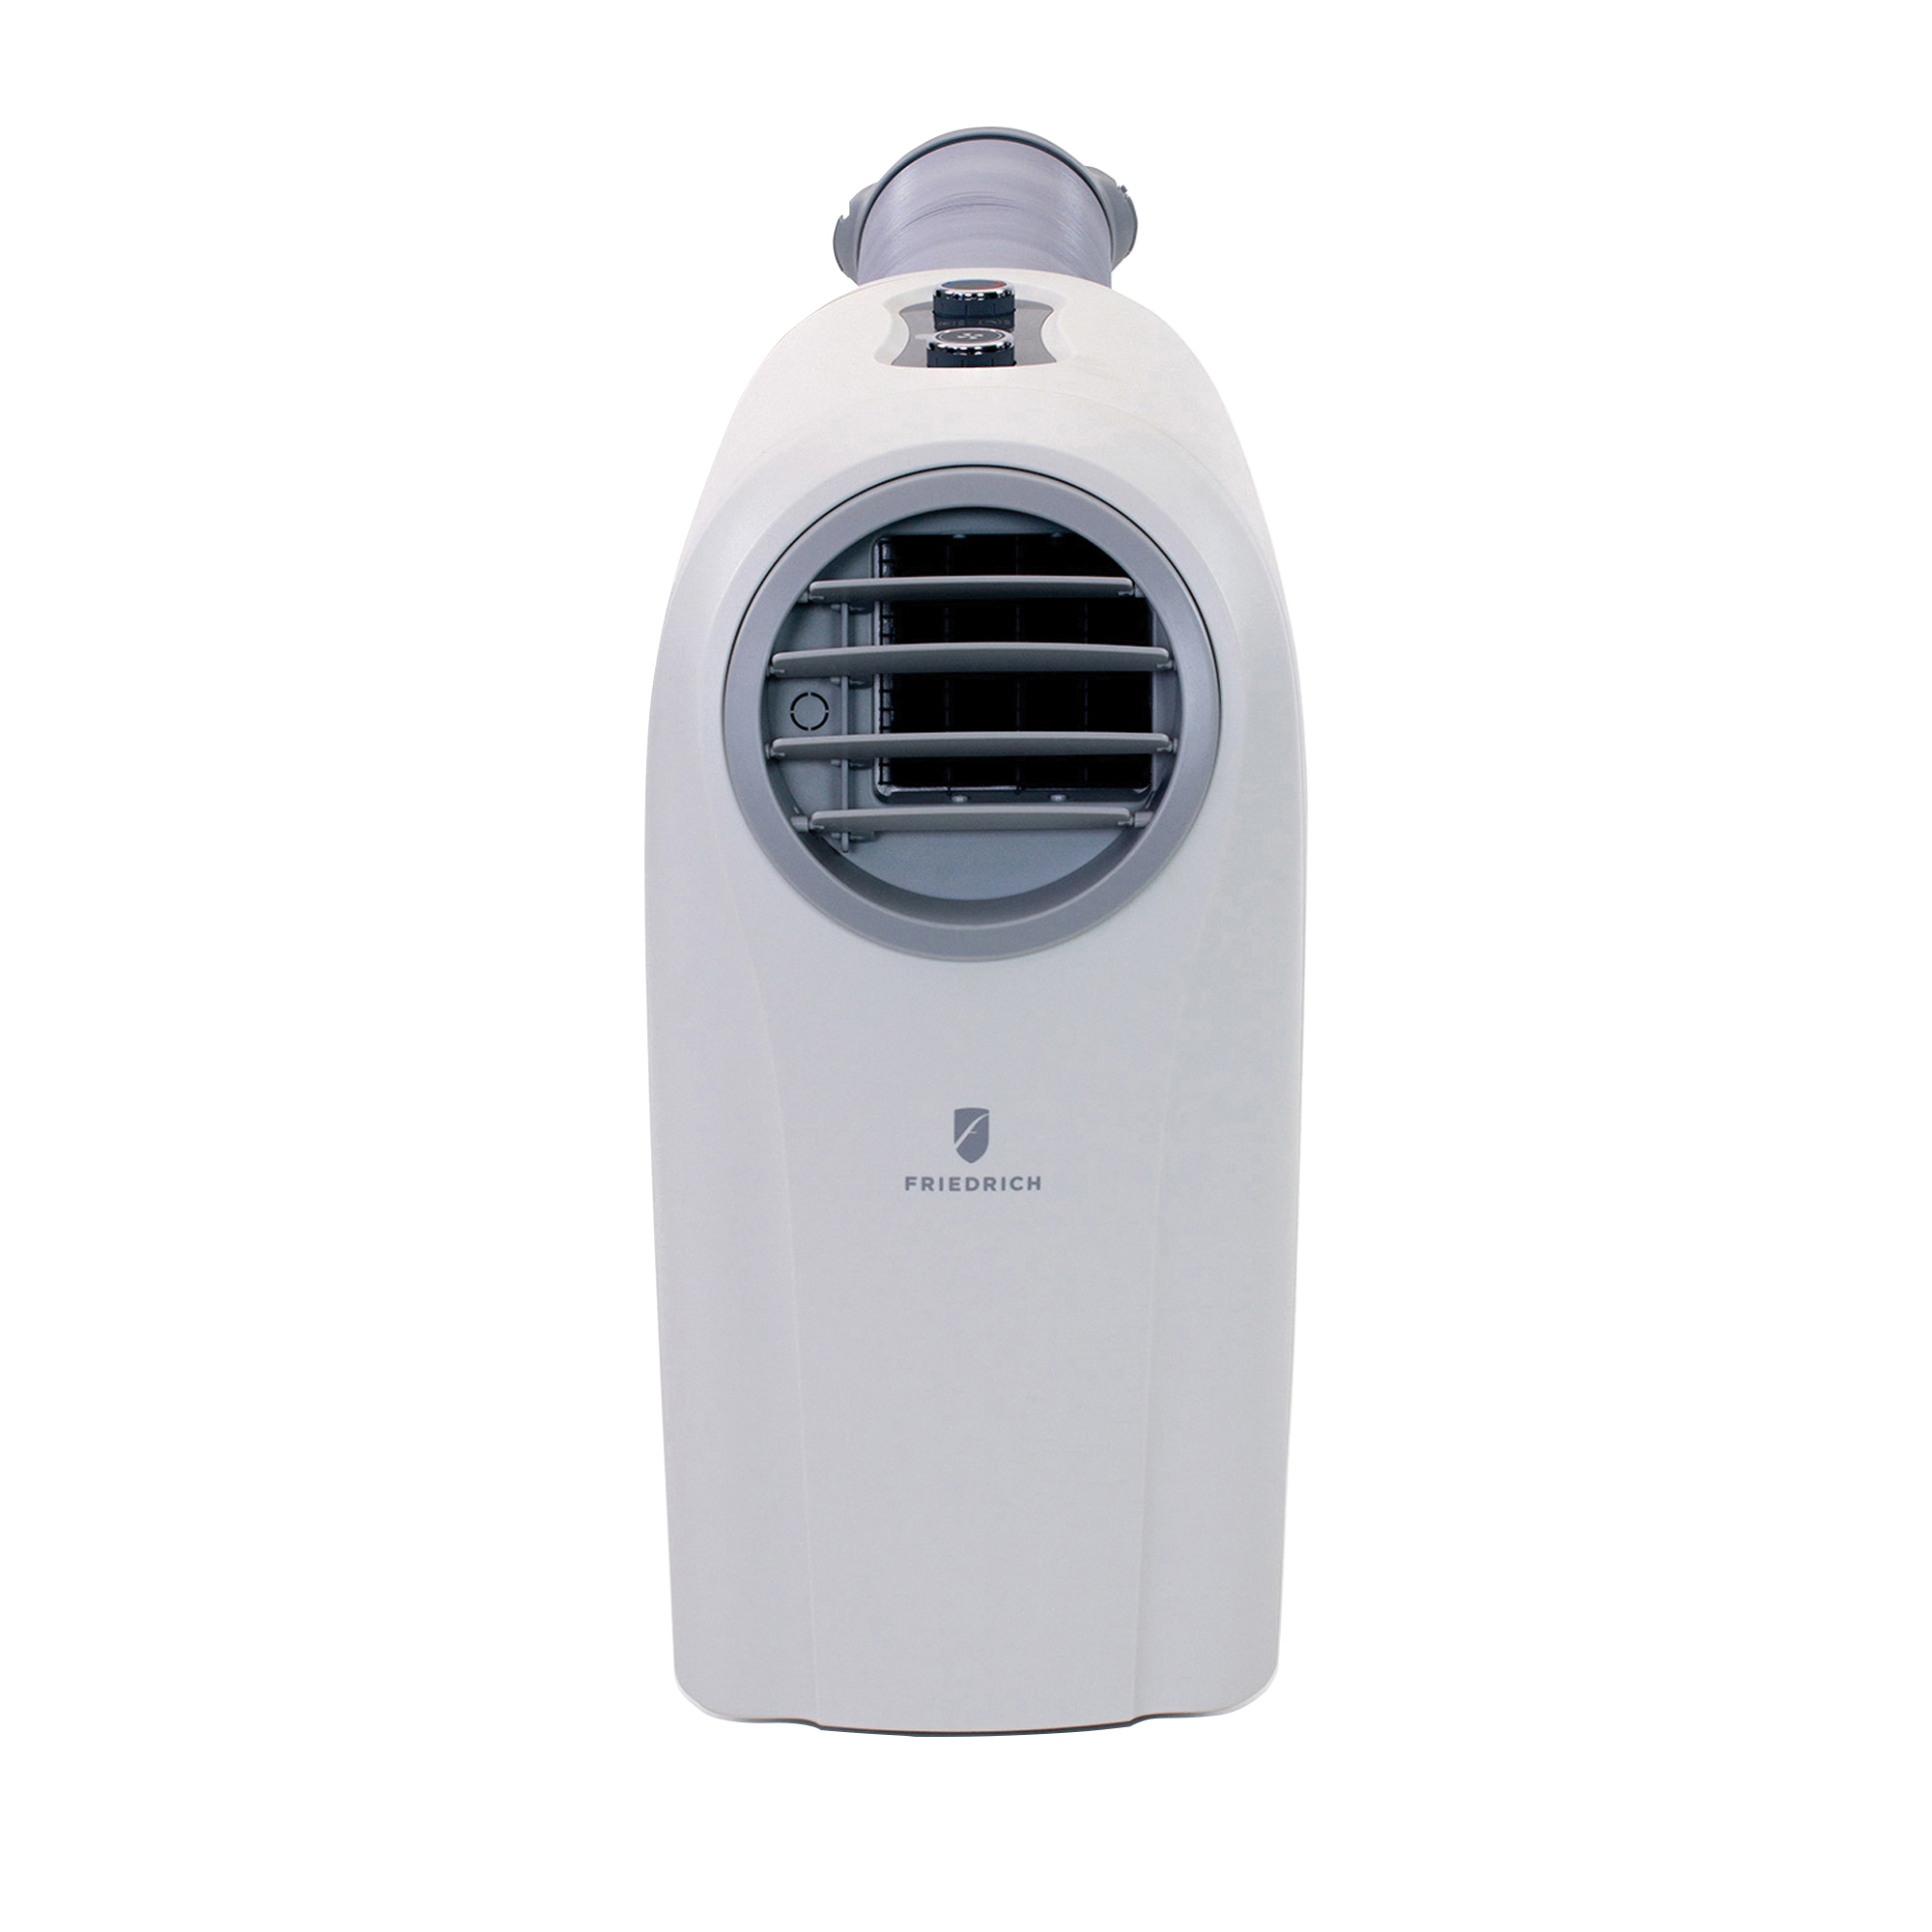 Single Hose Portable Air Conditioner | Friedrich